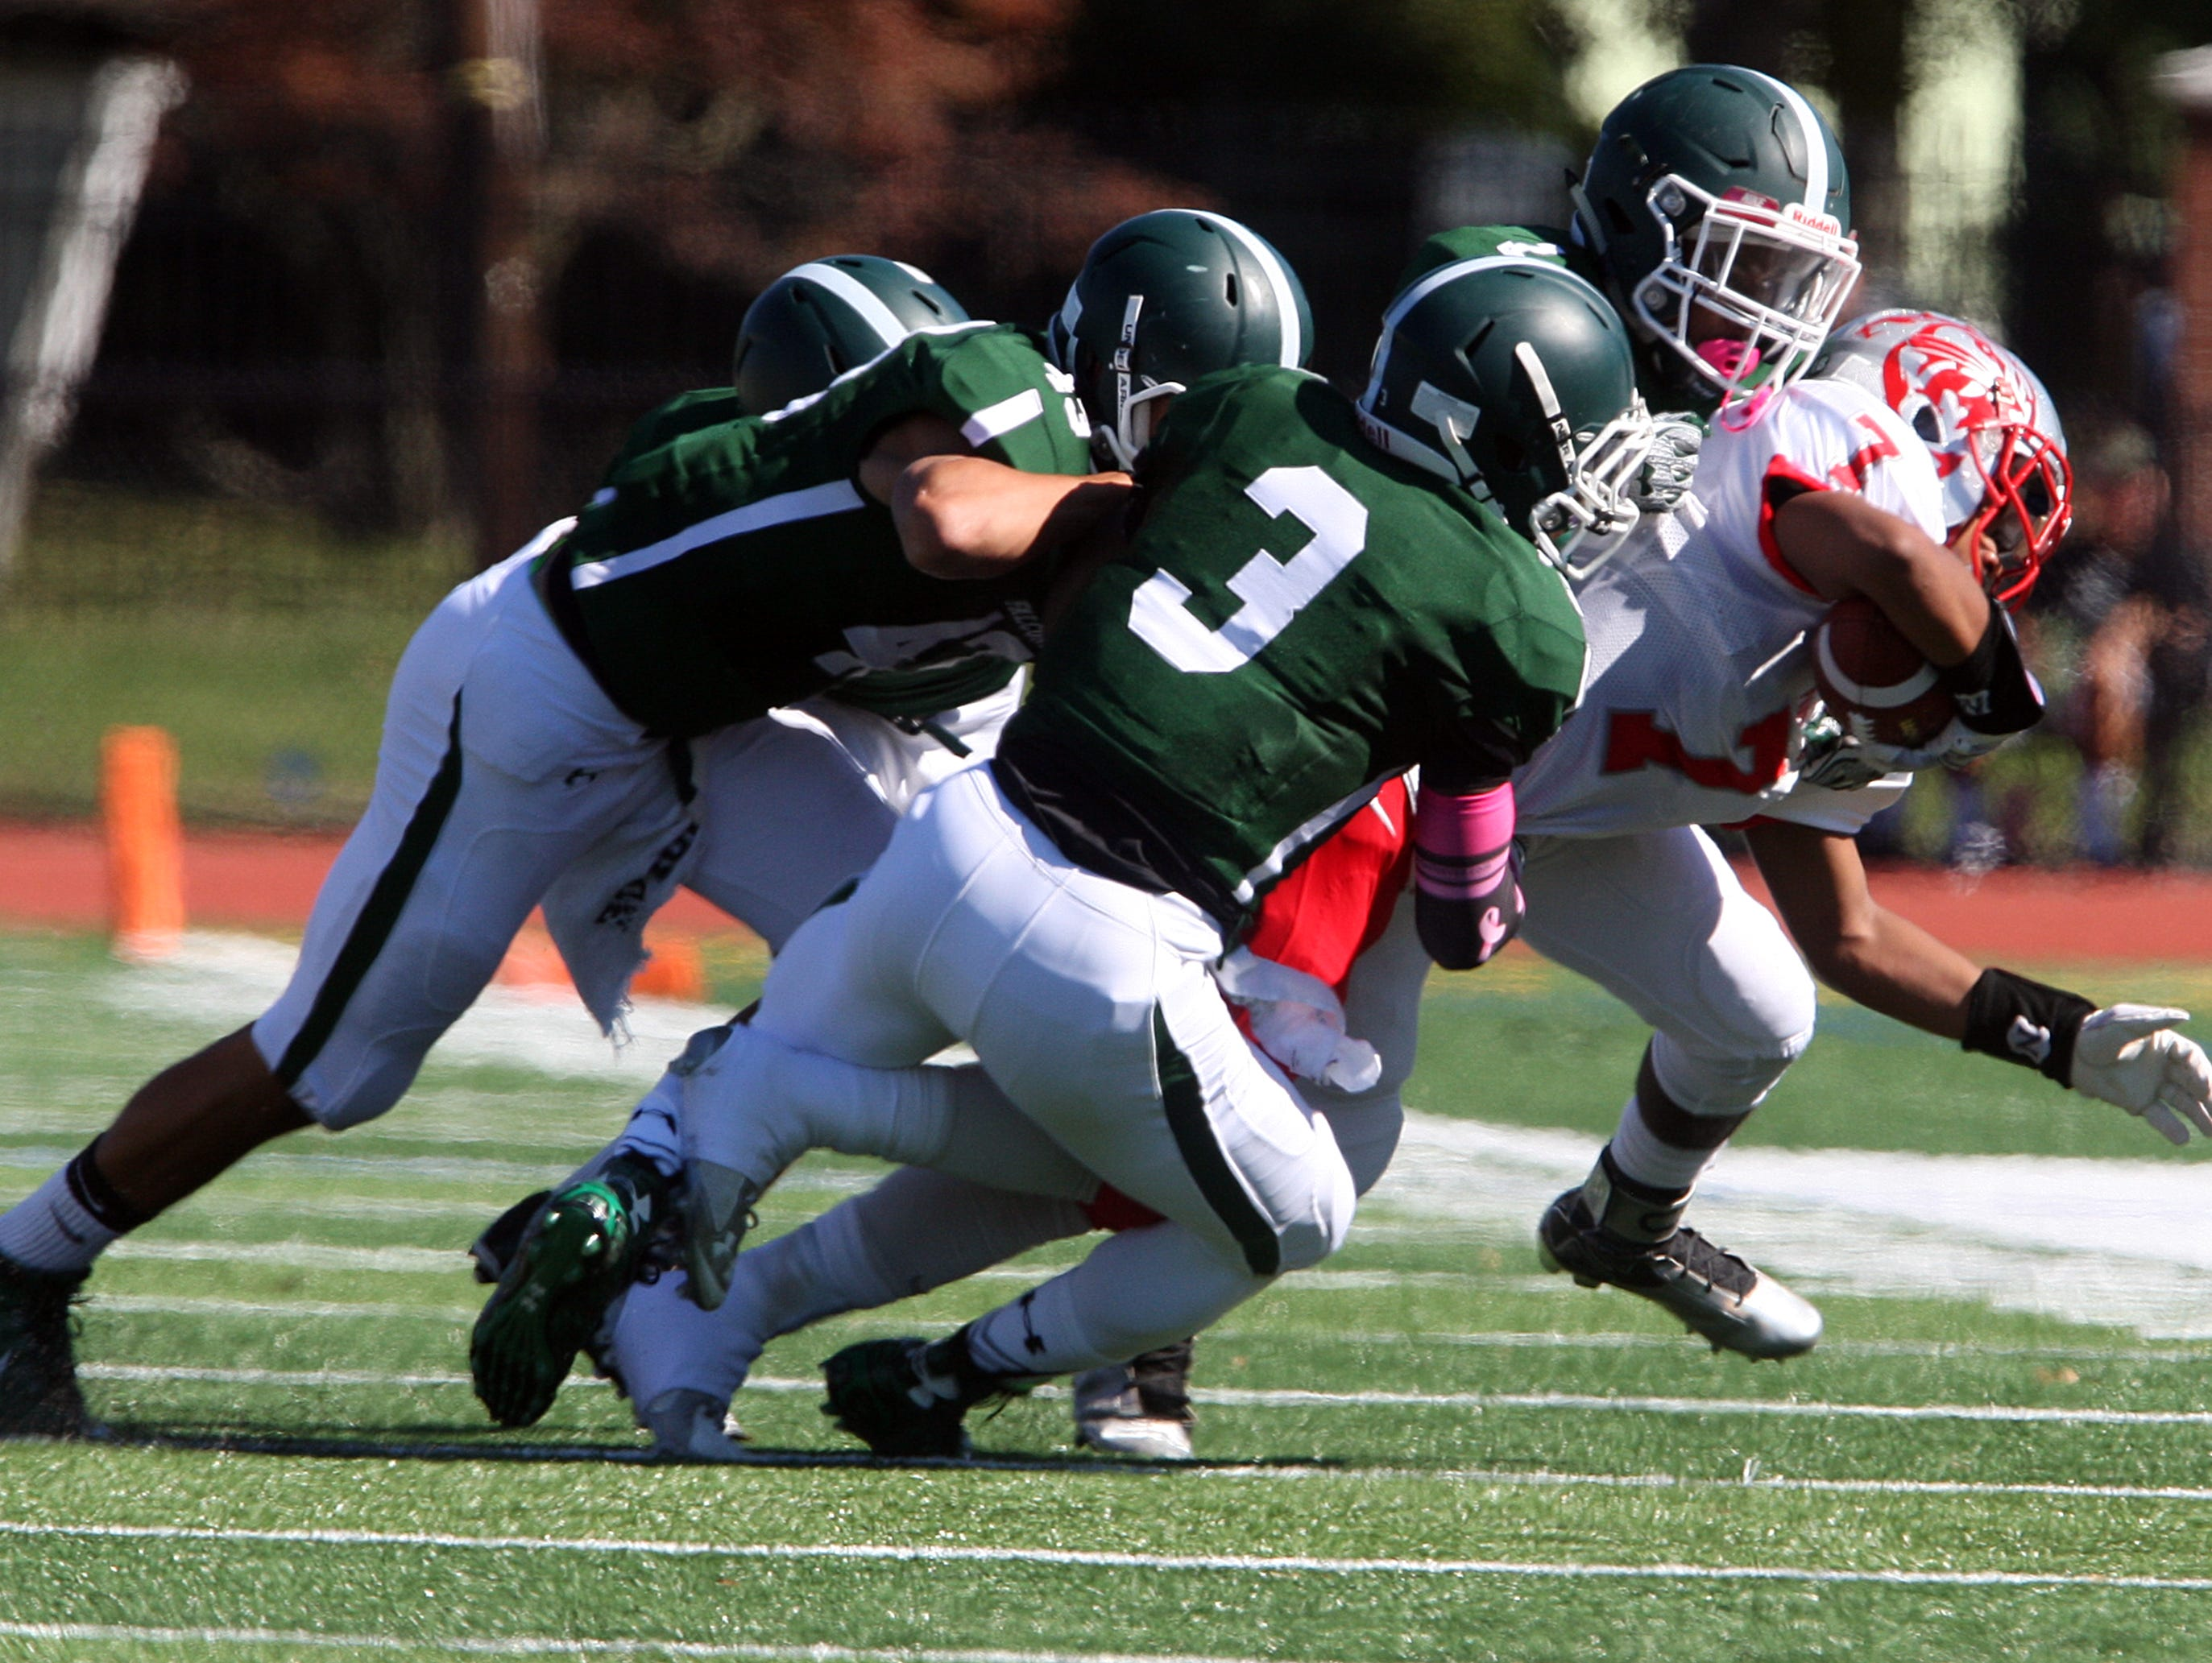 Action photos from the Perth Amboy High School at St. Joseph football game held at St. Joseph's new turf field in Metuhen on Saturday October 10, 2015. Here Perth Amboy's # 7 Josh Nazario is brought down by a trio of St. Joseph defenders.